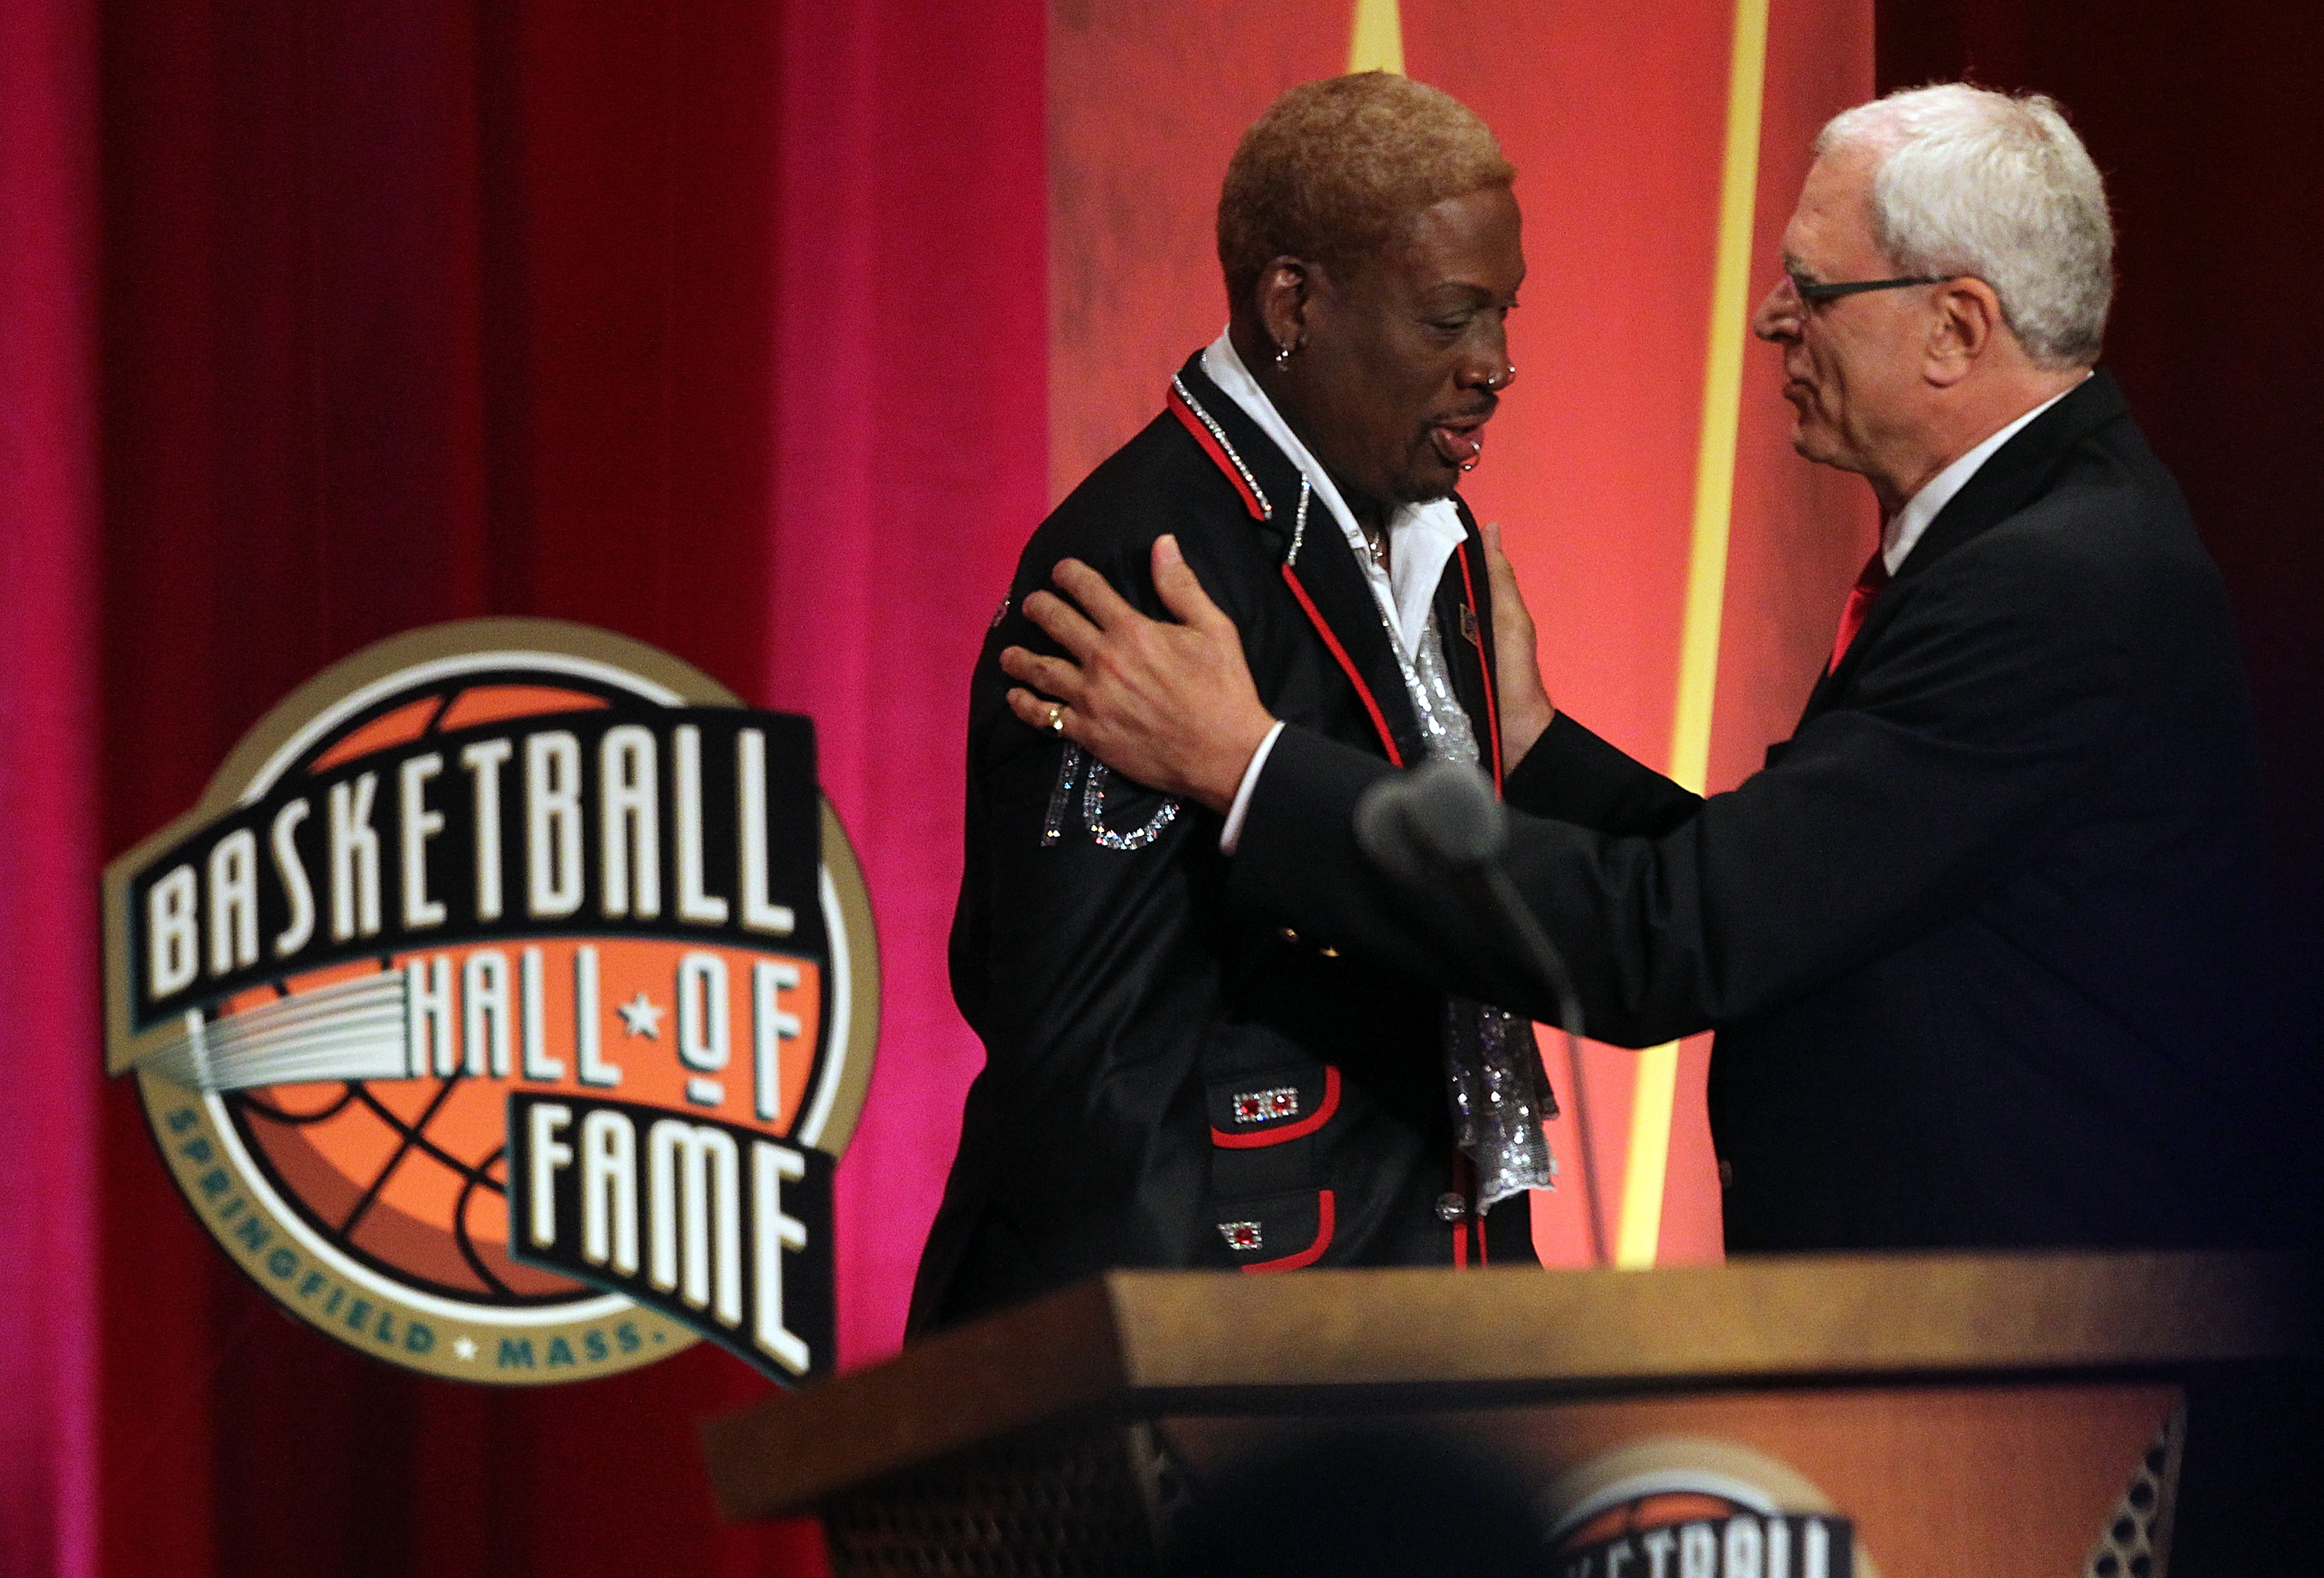 Dennis Rodman Emotionally Addressed His Mother, Father, Kids in Powerful Hall of Fame Speech